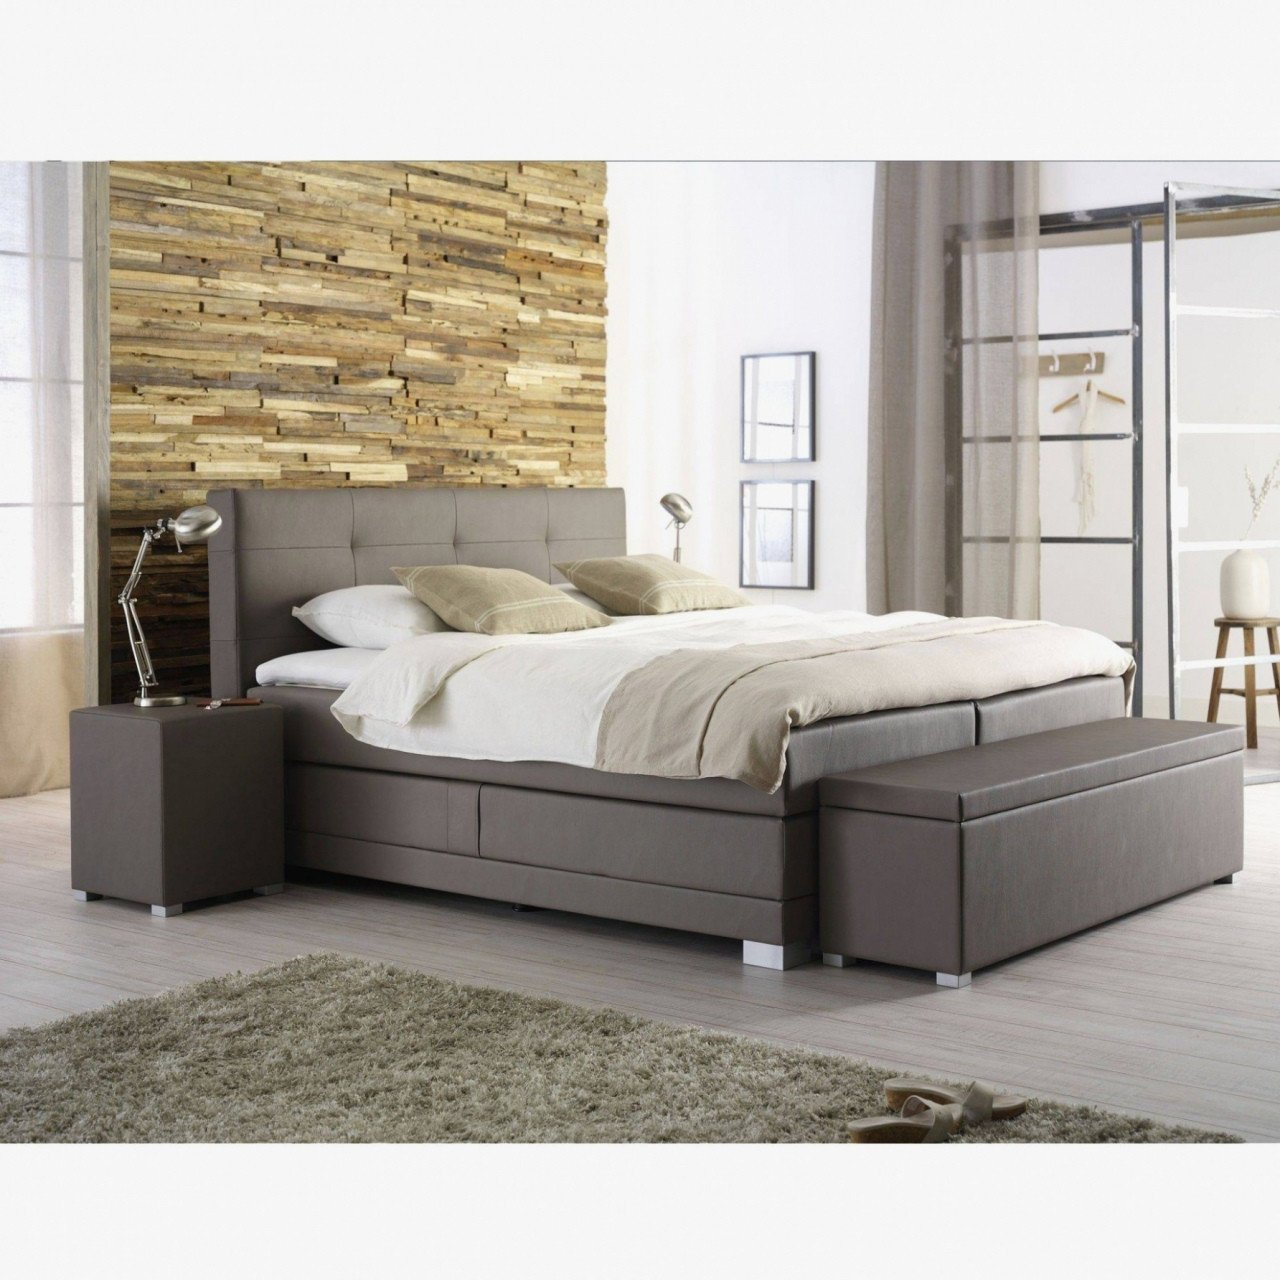 High Quality Bedroom Furniture Inspirational Bed with Drawers Under — Procura Home Blog